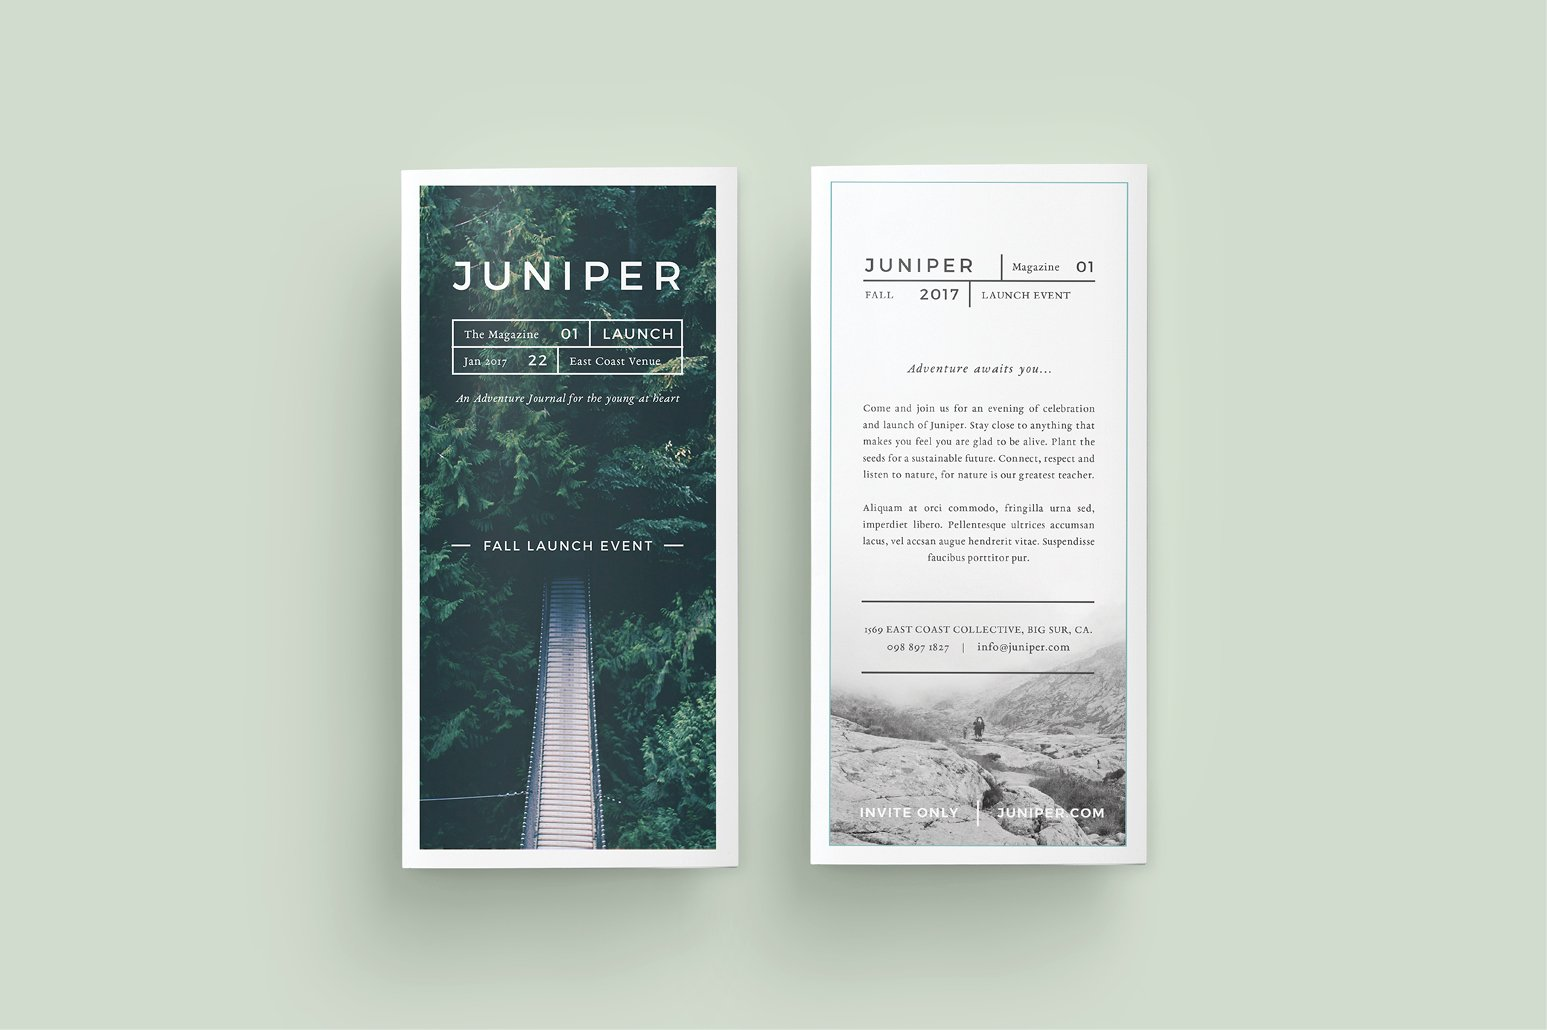 J u n i p e r trifold brochure brochure templates for Brochur template